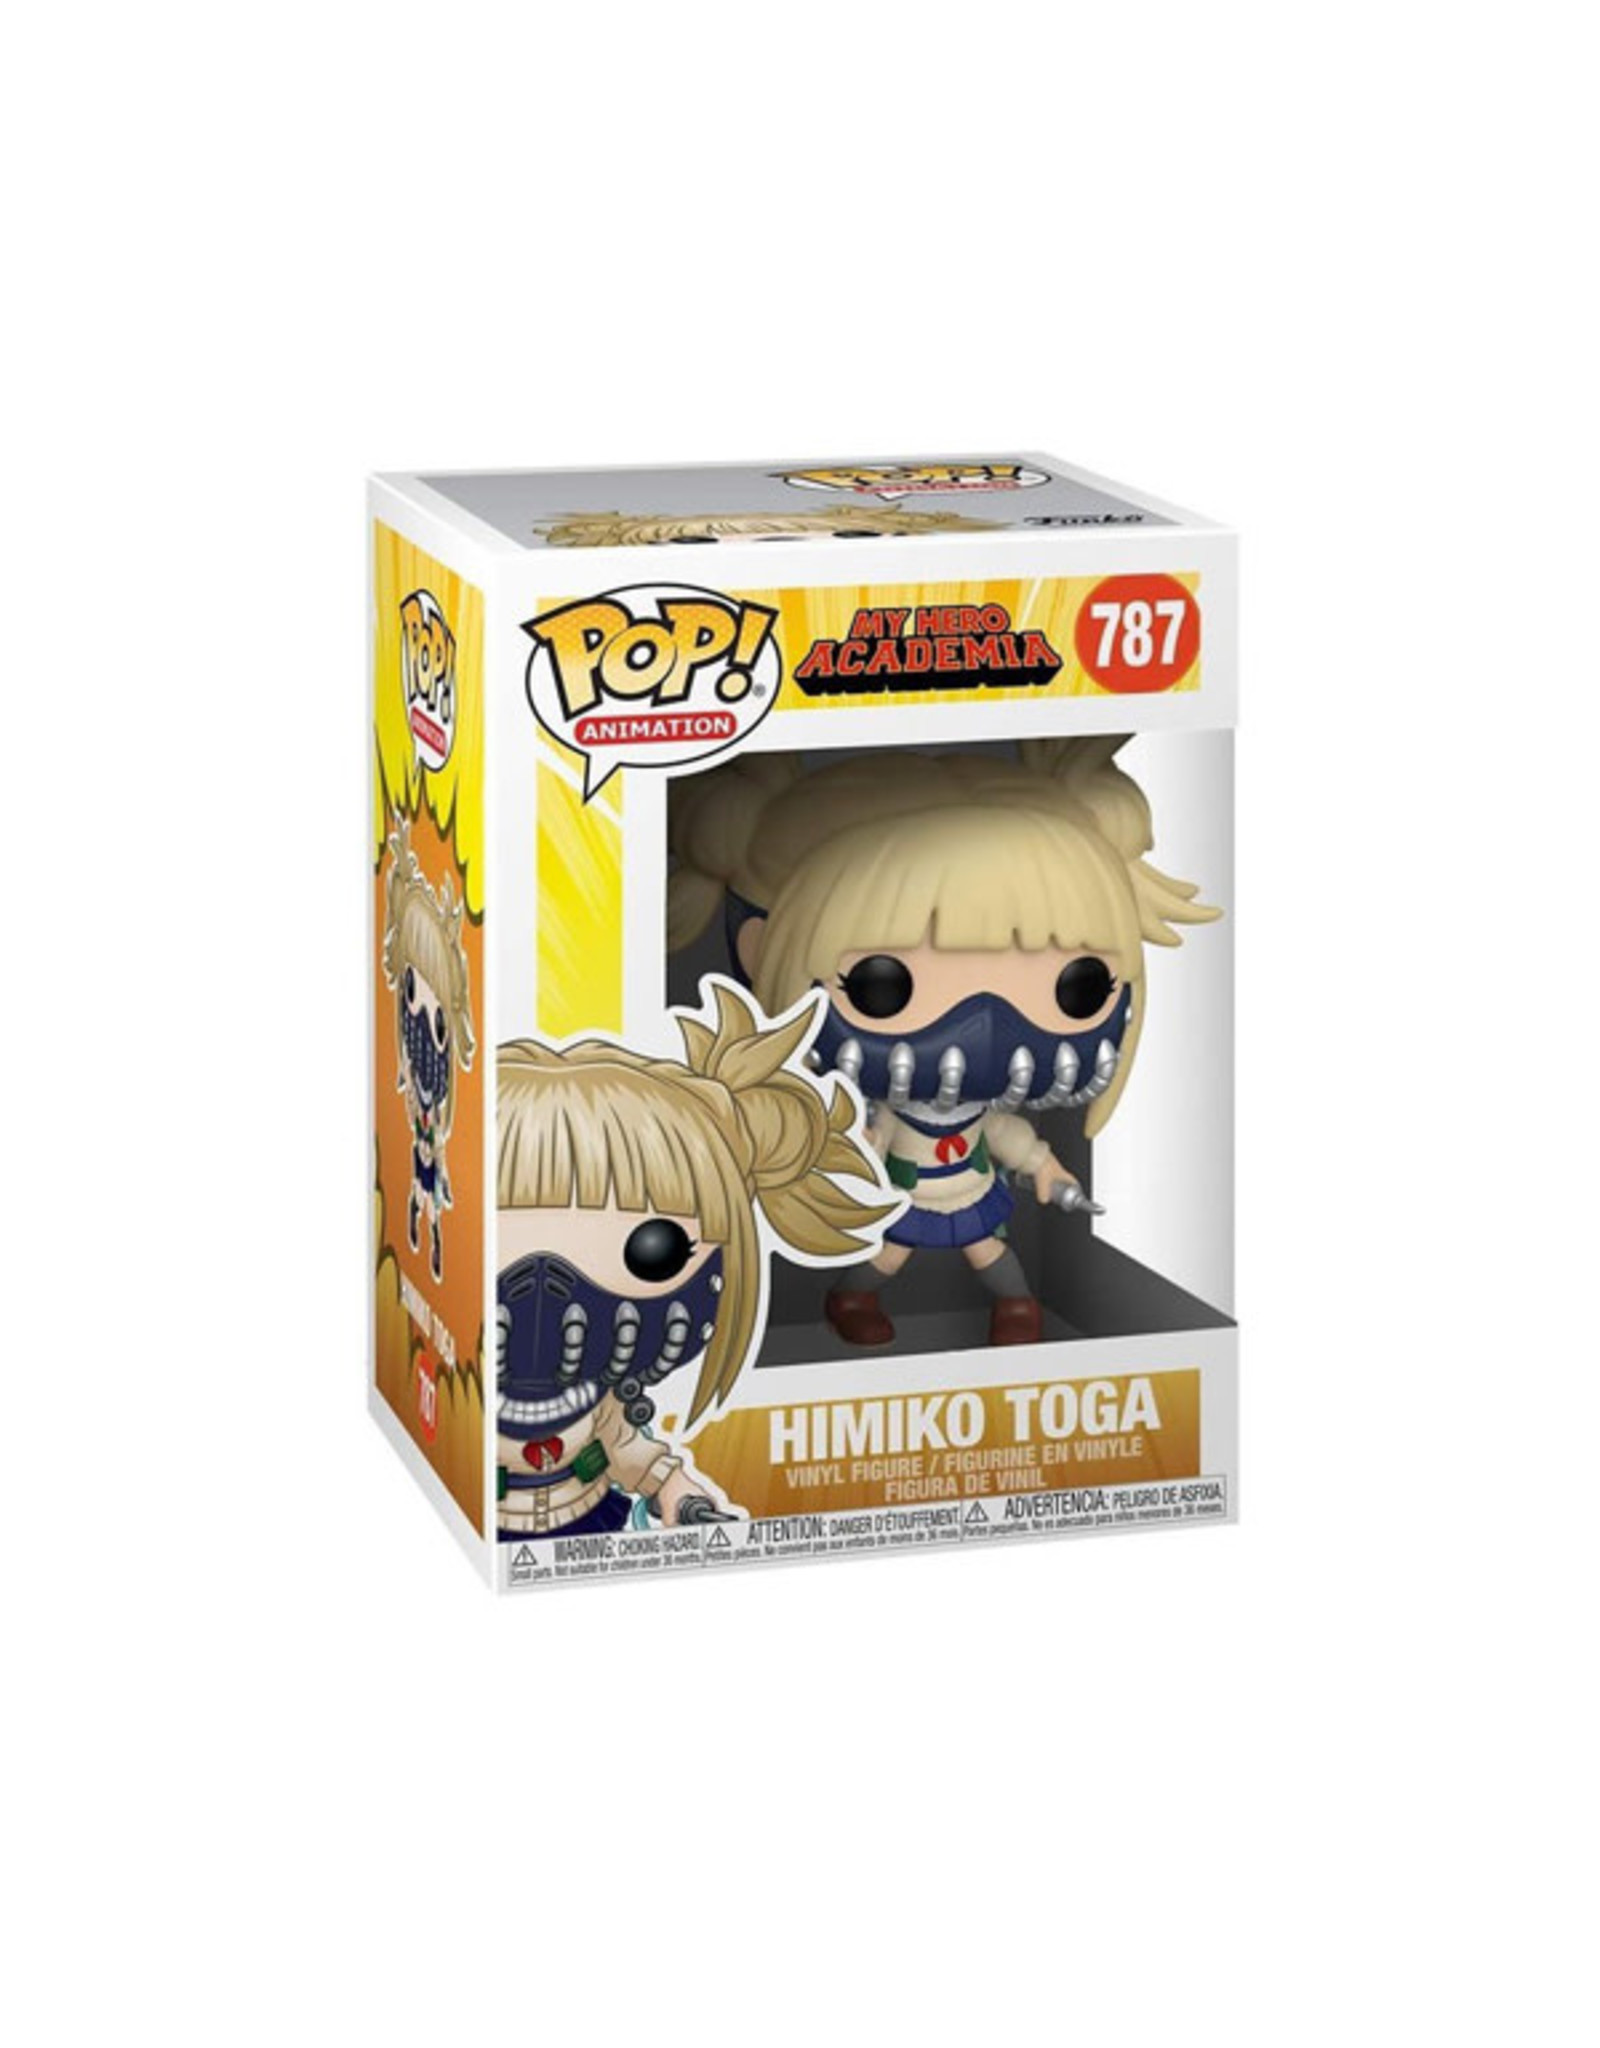 My Hero Academia - Himiko Toga with Face Cover - Funko Pop! Animation 787